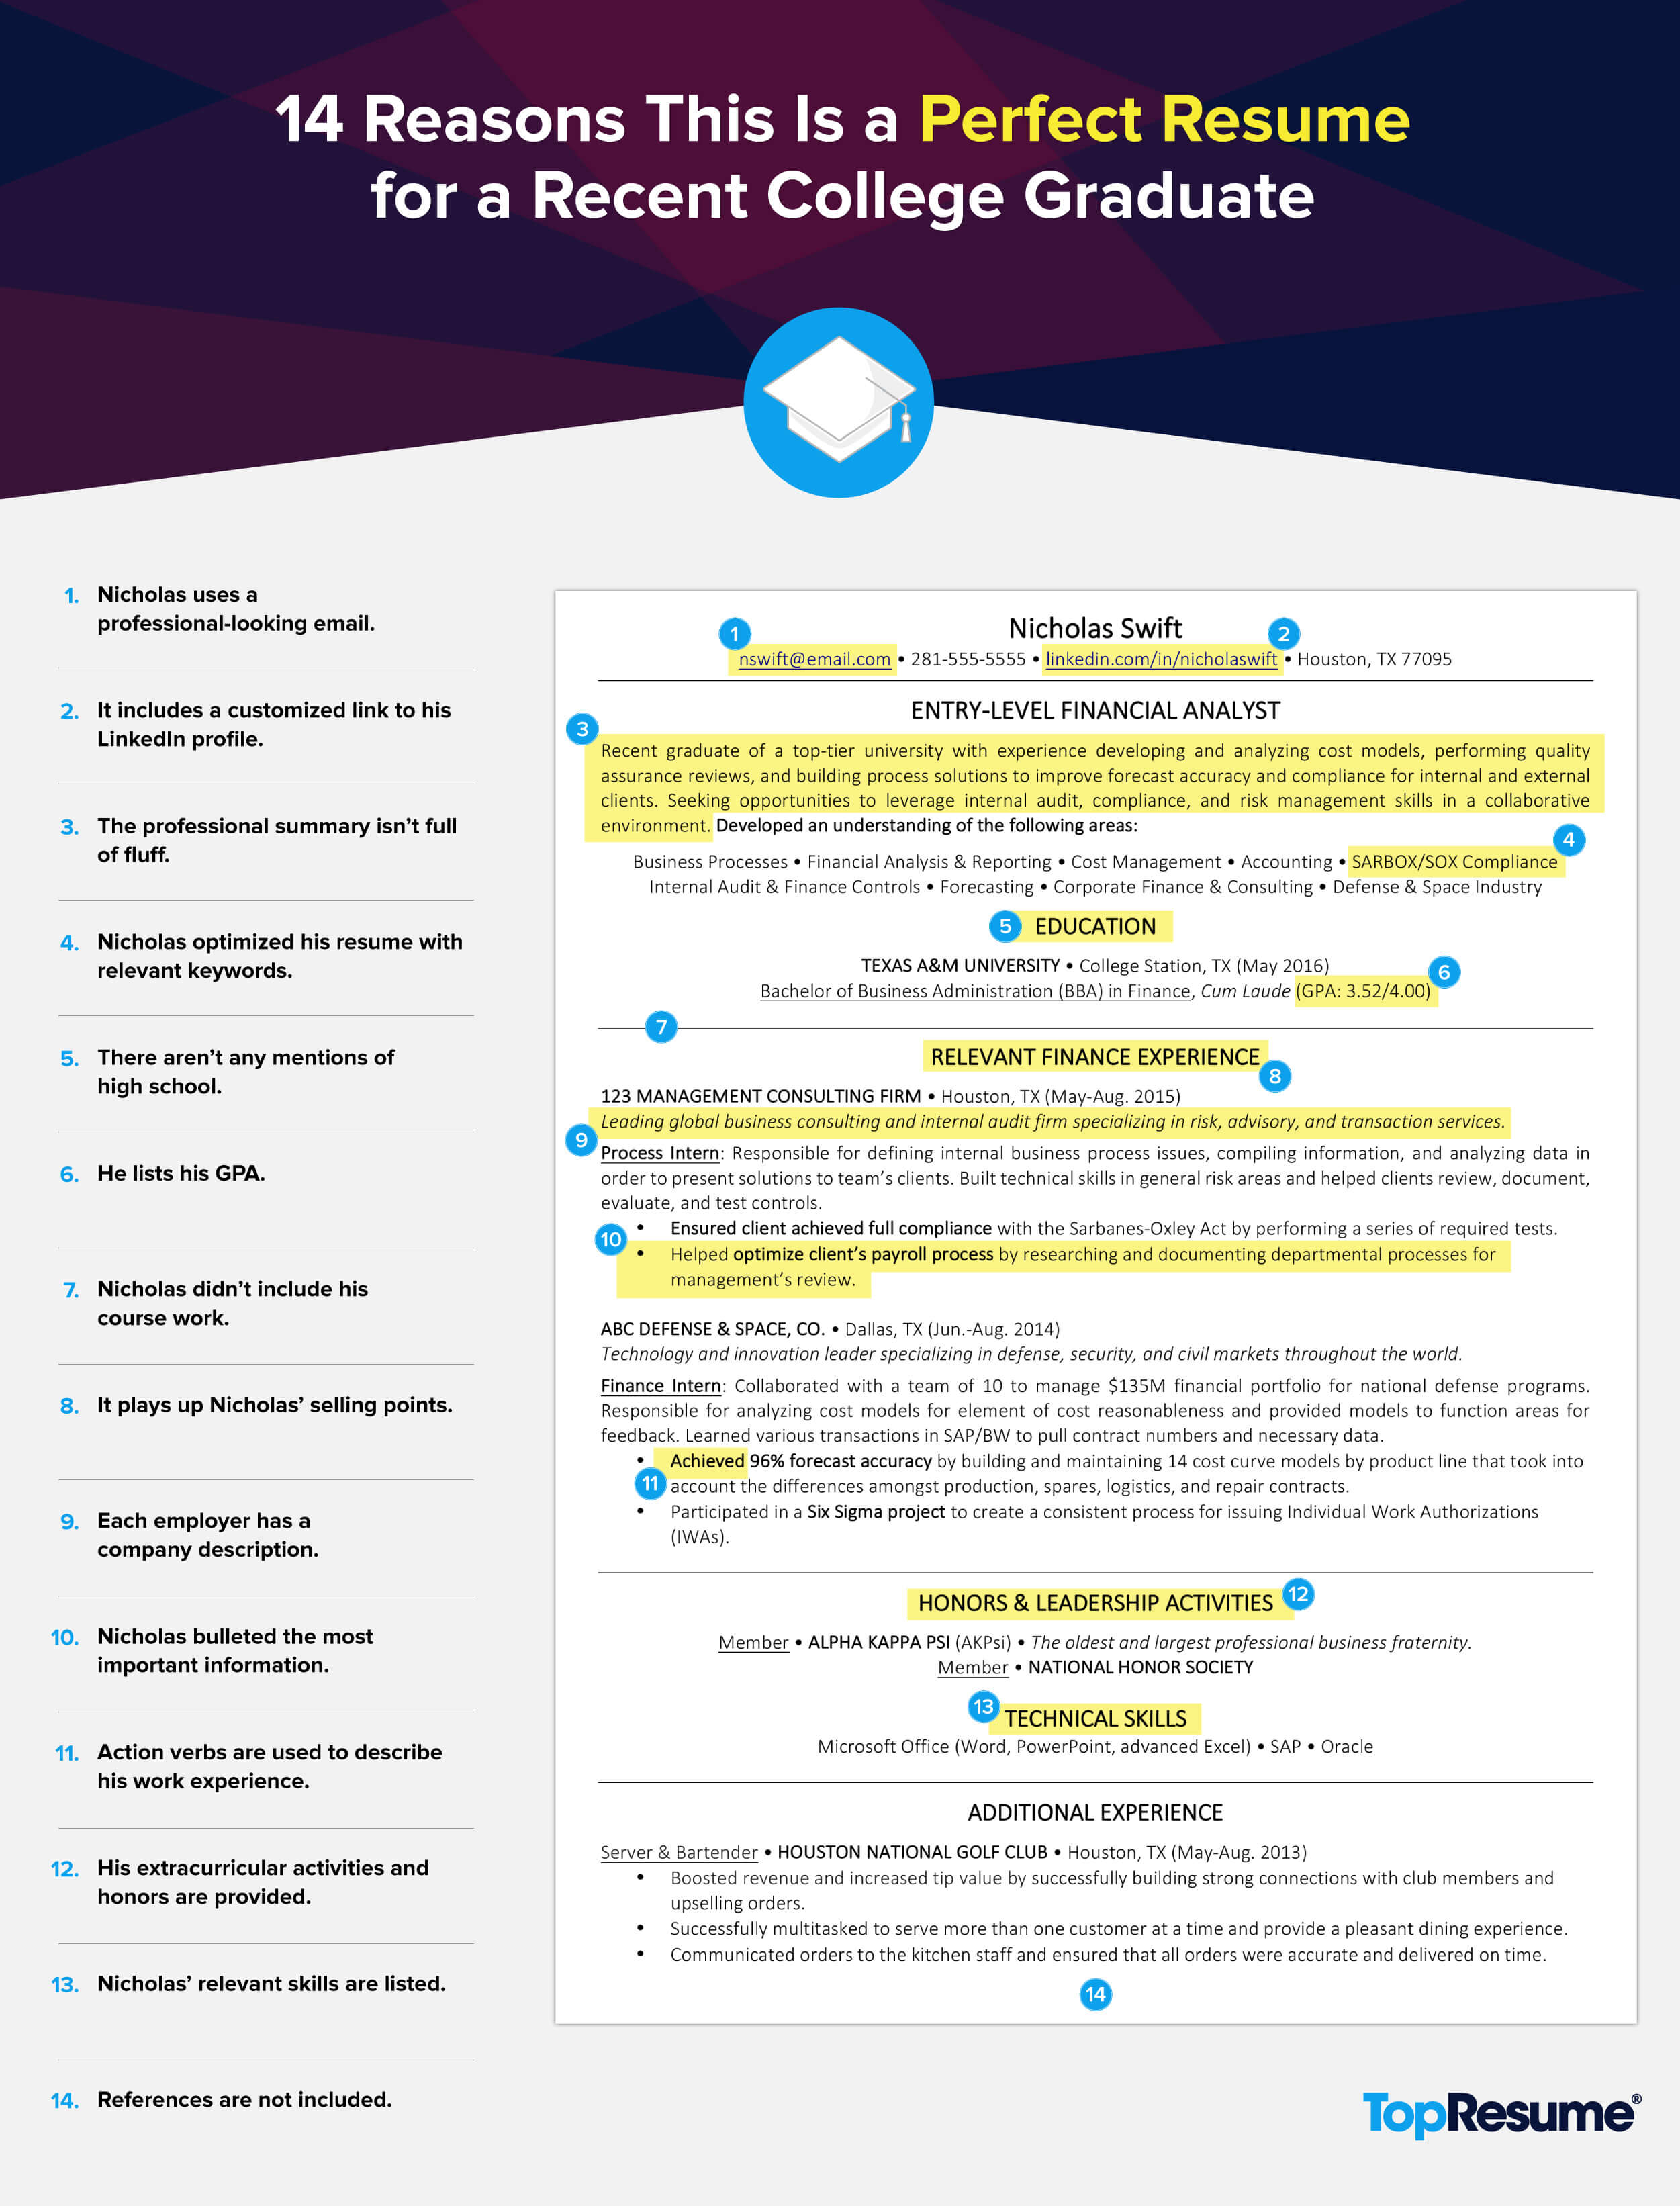 14 Reasons this is a Perfect Recent College Grad Resume | TopResume